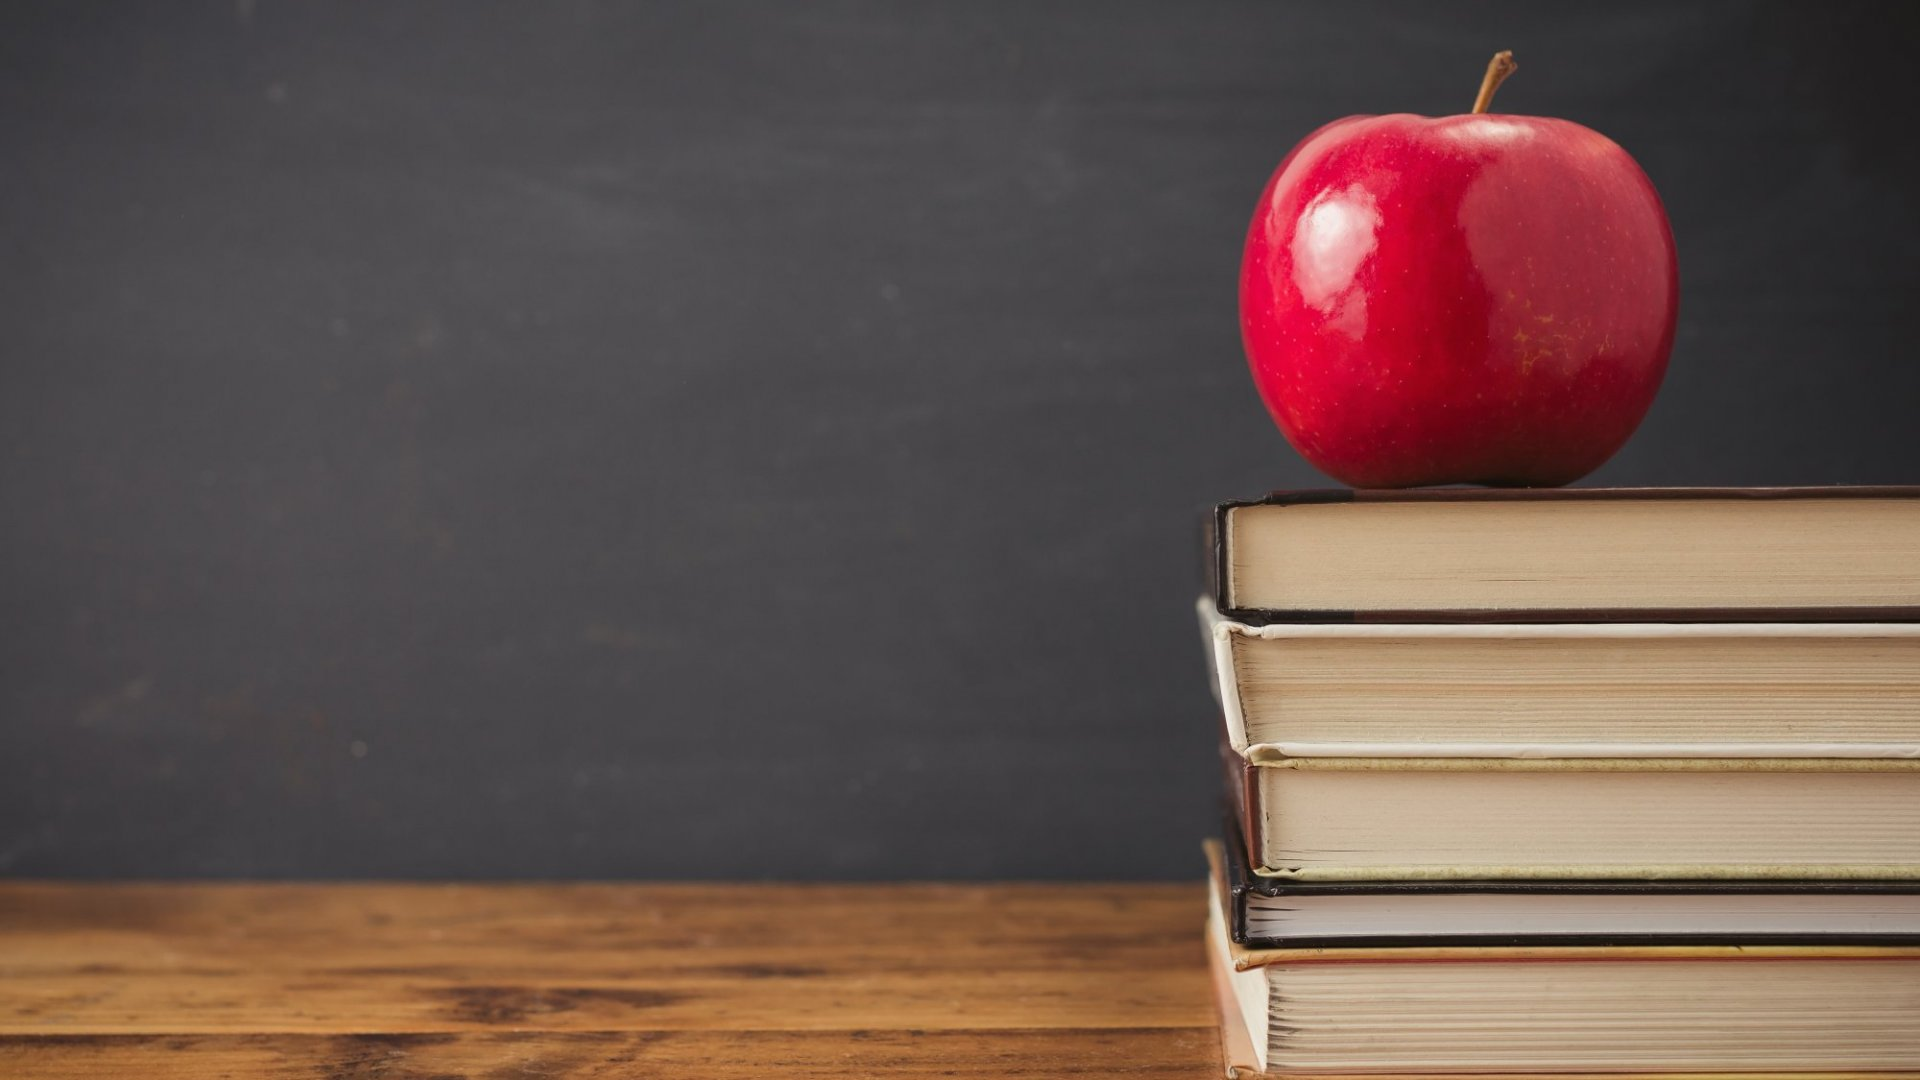 4 Tips to Use a Back-to-School Mentality to Boost Your Career